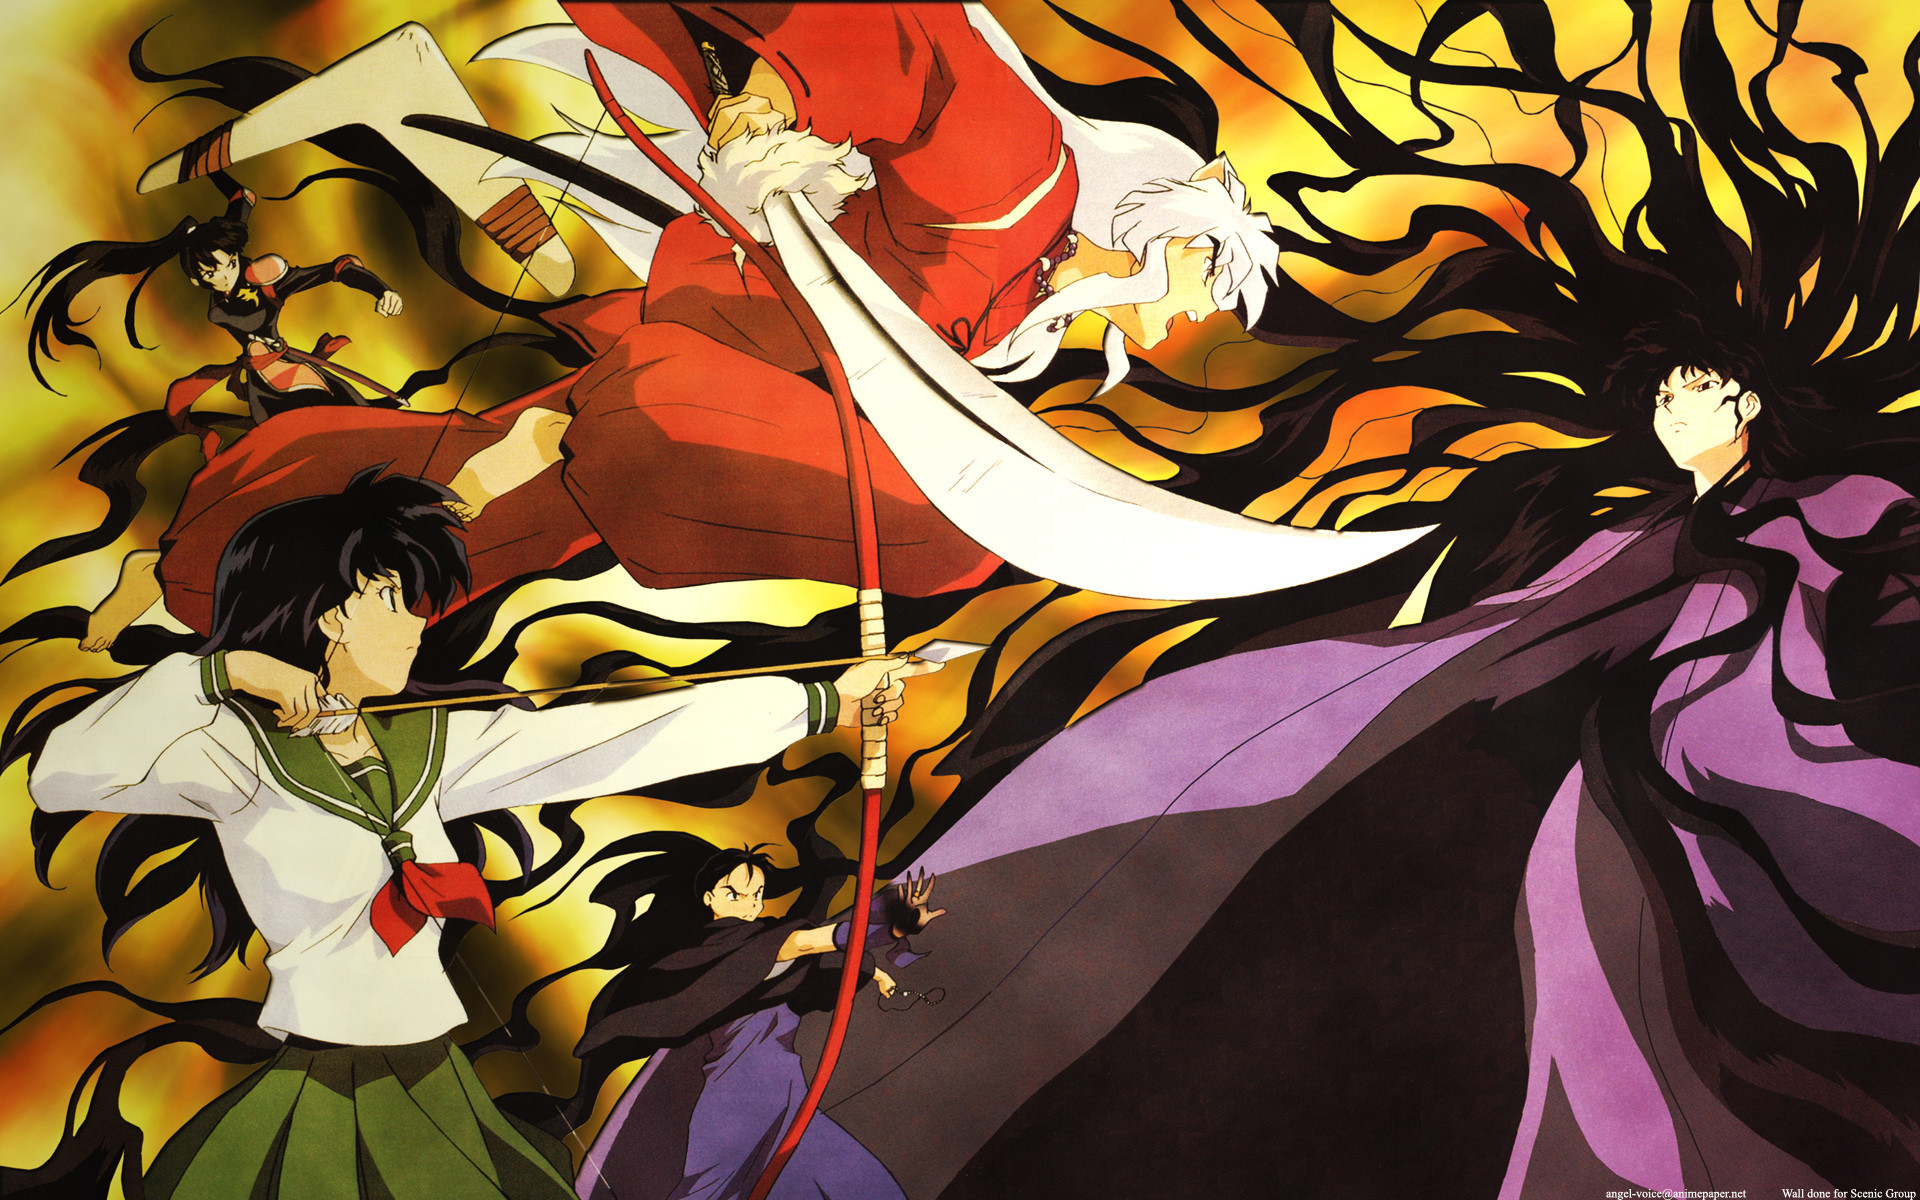 1920x1200 1080x1920 http://stockwallpapers.org/17234/inuyasha-wallpaper-for-android.html  - Inuyasha Wallpaper For Android